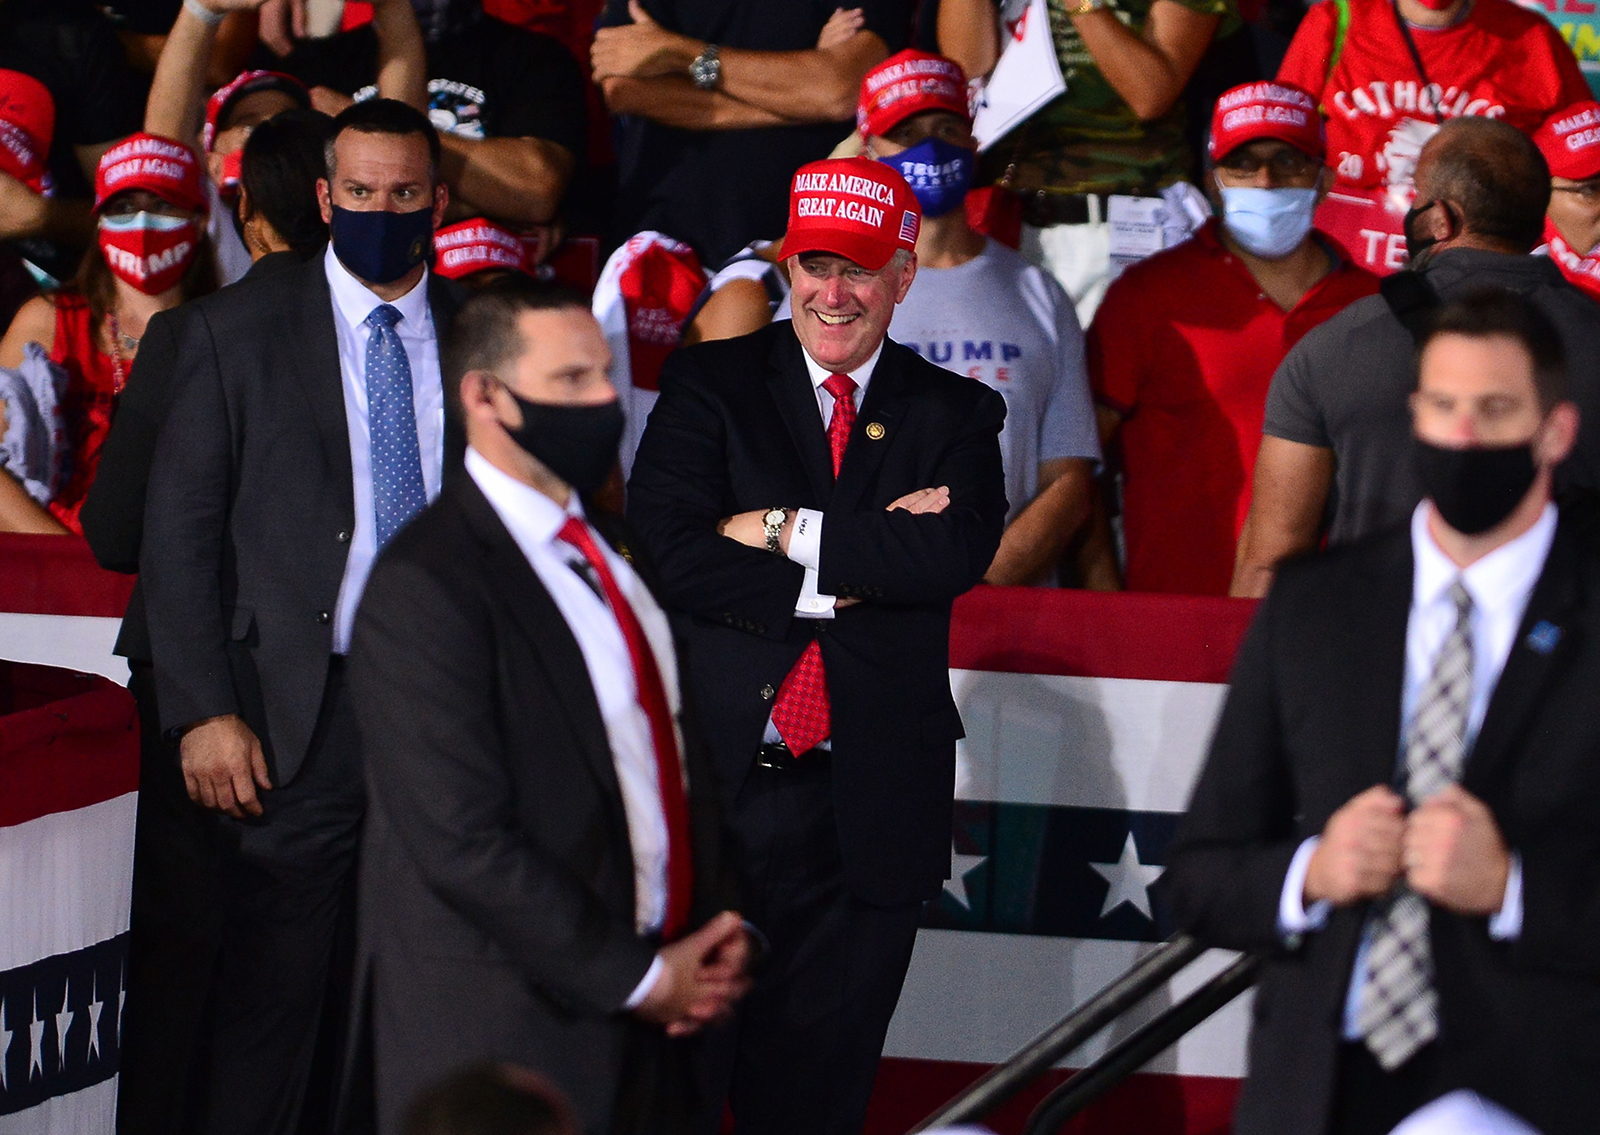 White House Chief of Staff Mark Meadows (center) listens as US President Donald Trump speak during his campaign event at Miami-Opa Locka Executive Airport in Florida, on November 1.